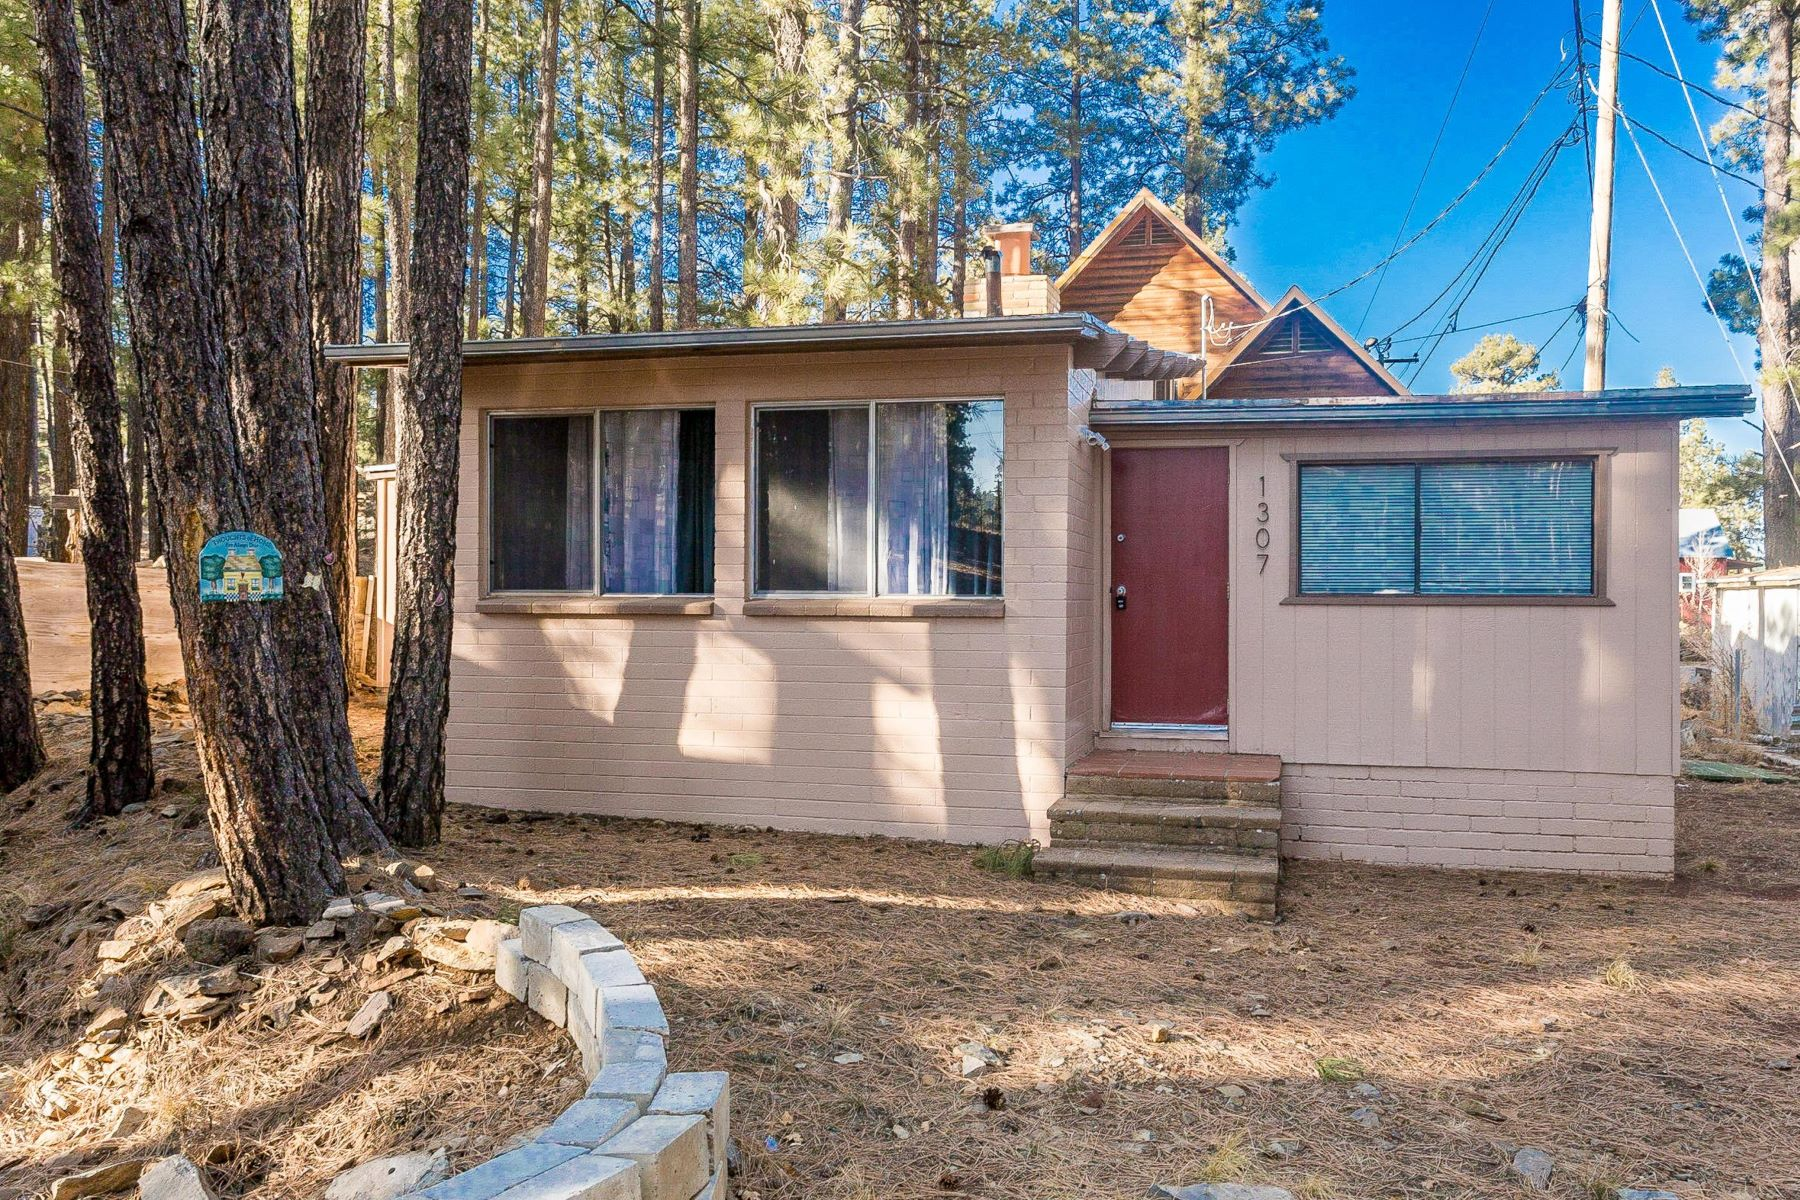 Single Family Home for Sale at Awesome Turn Key Cabin in The Pines 1307 Smokey TRL, Mormon Lake, Arizona, 86038 United States